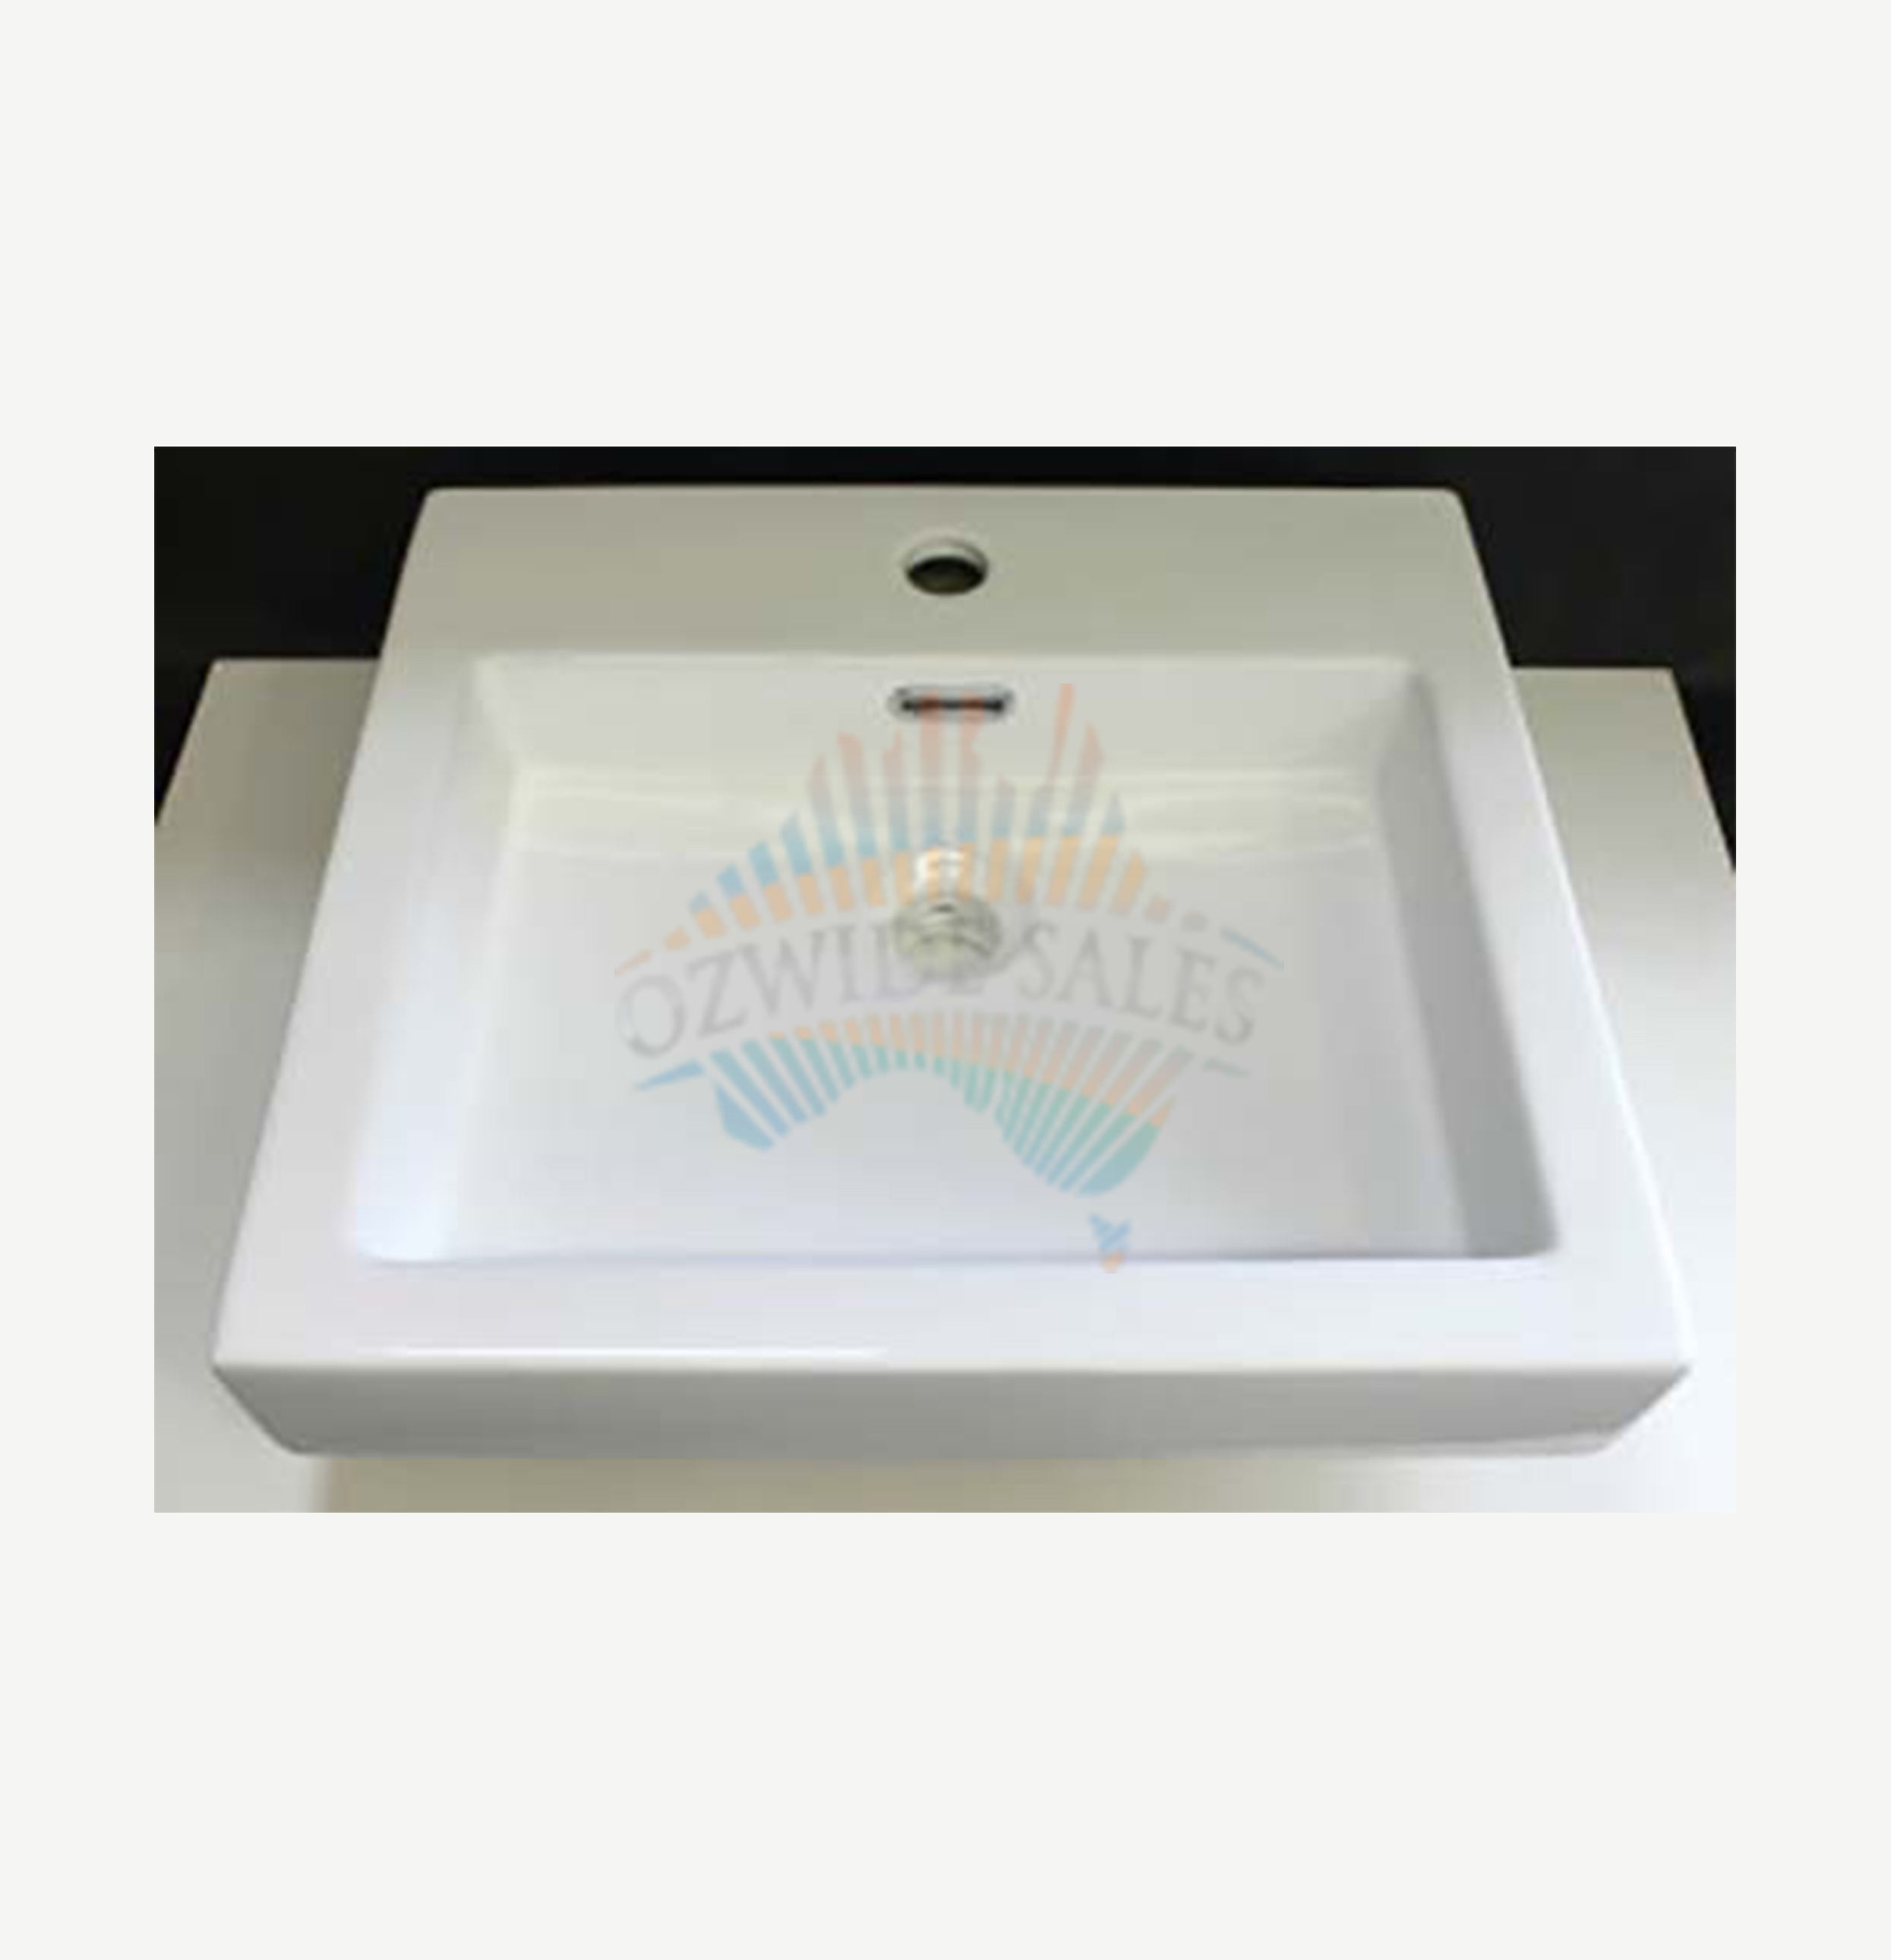 Wide Shallow Bathroom Vanity ... Ceramic Basin Above Counter Top White New Modern Shallow Design | eBay